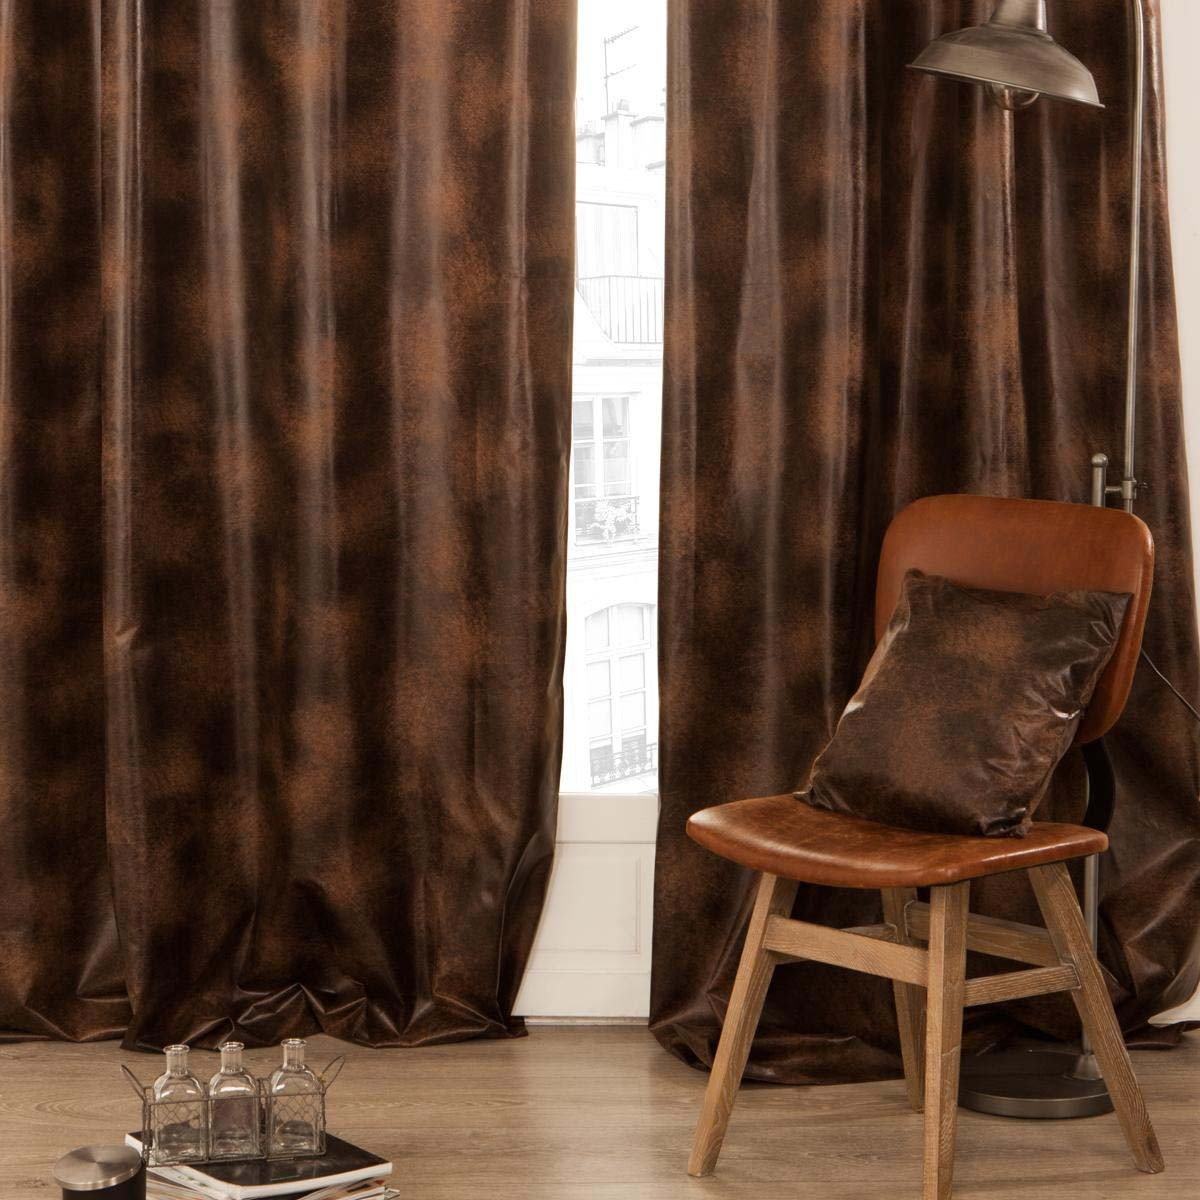 Rideau illets 140x260cm marron les douces nuits de ma linge de maison for Rideau salon marron